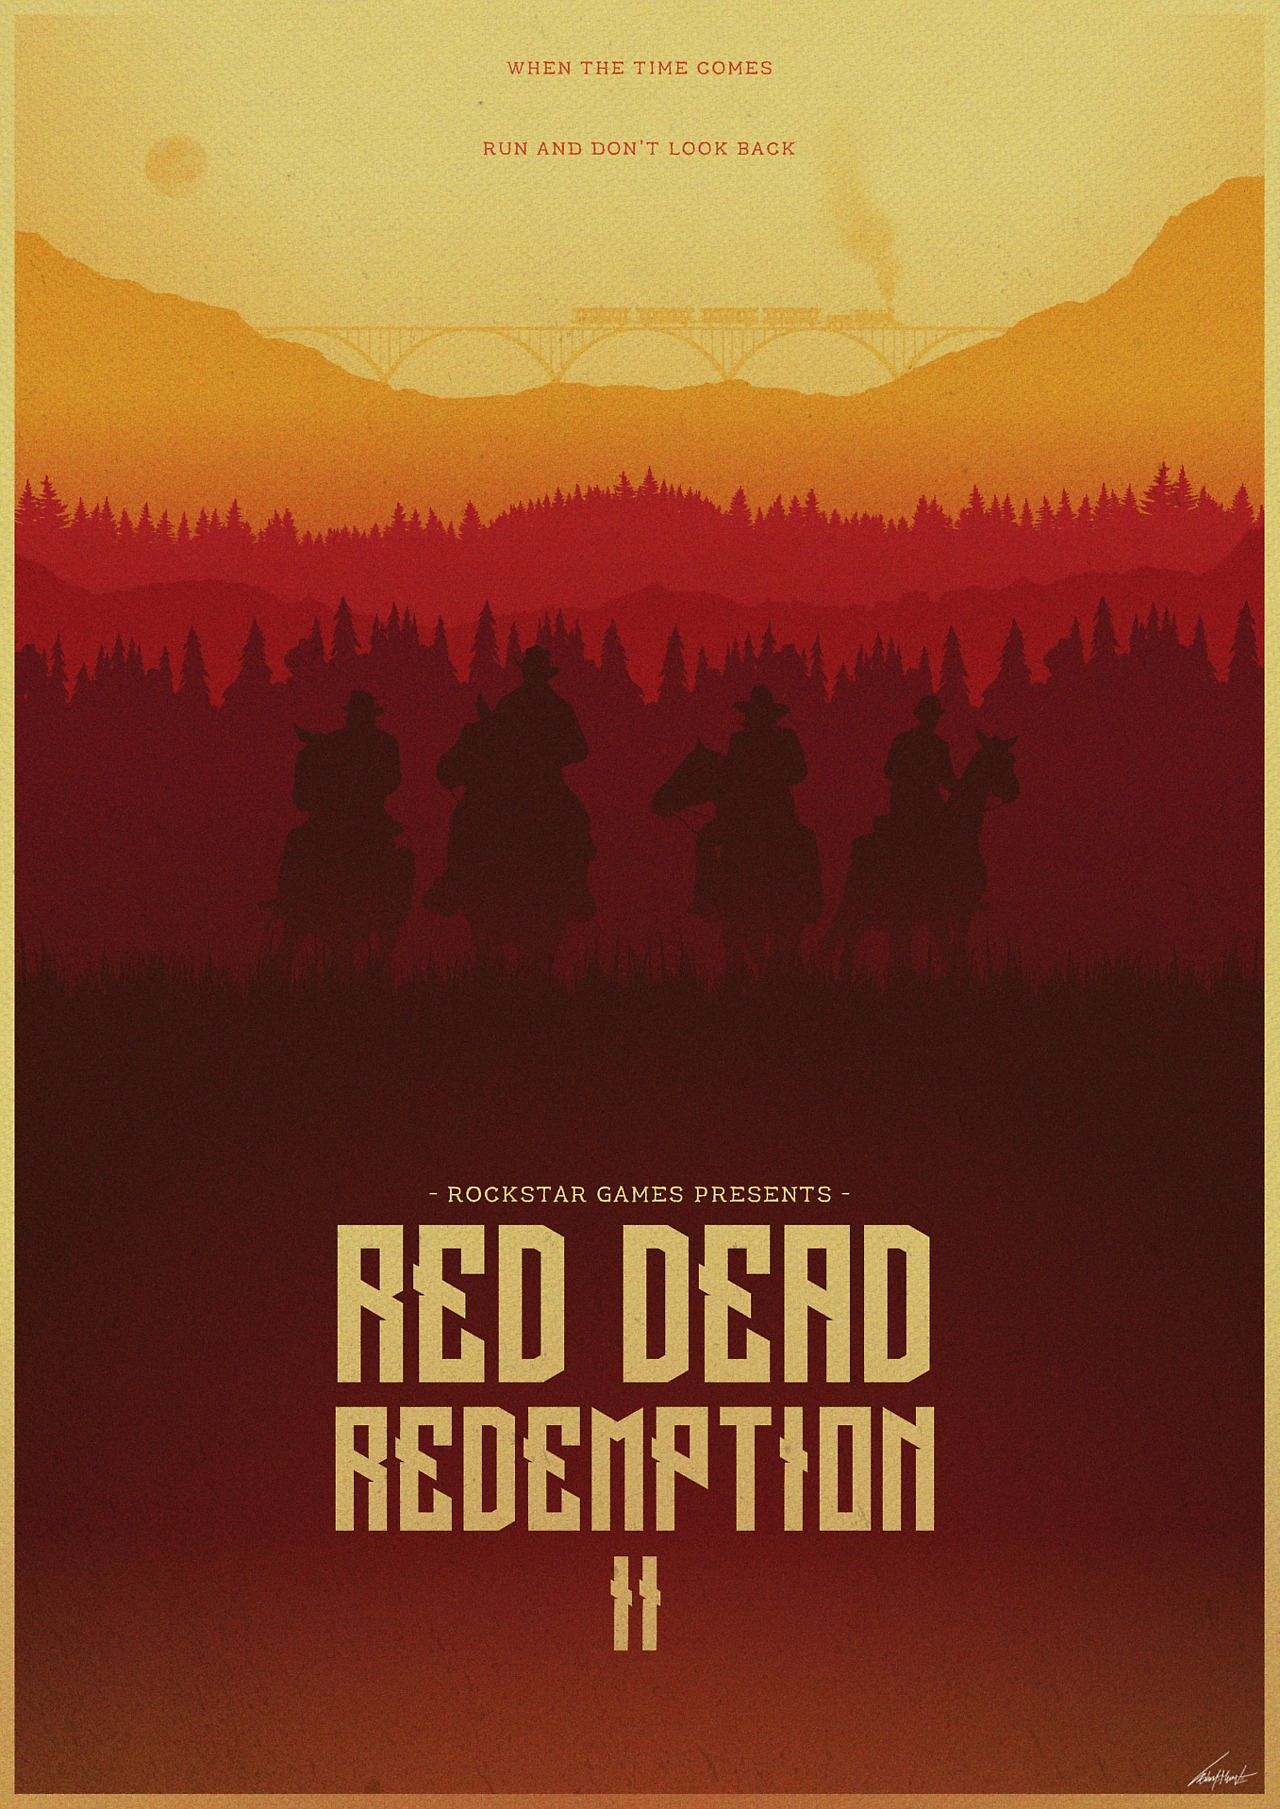 red dead redemption ii created by